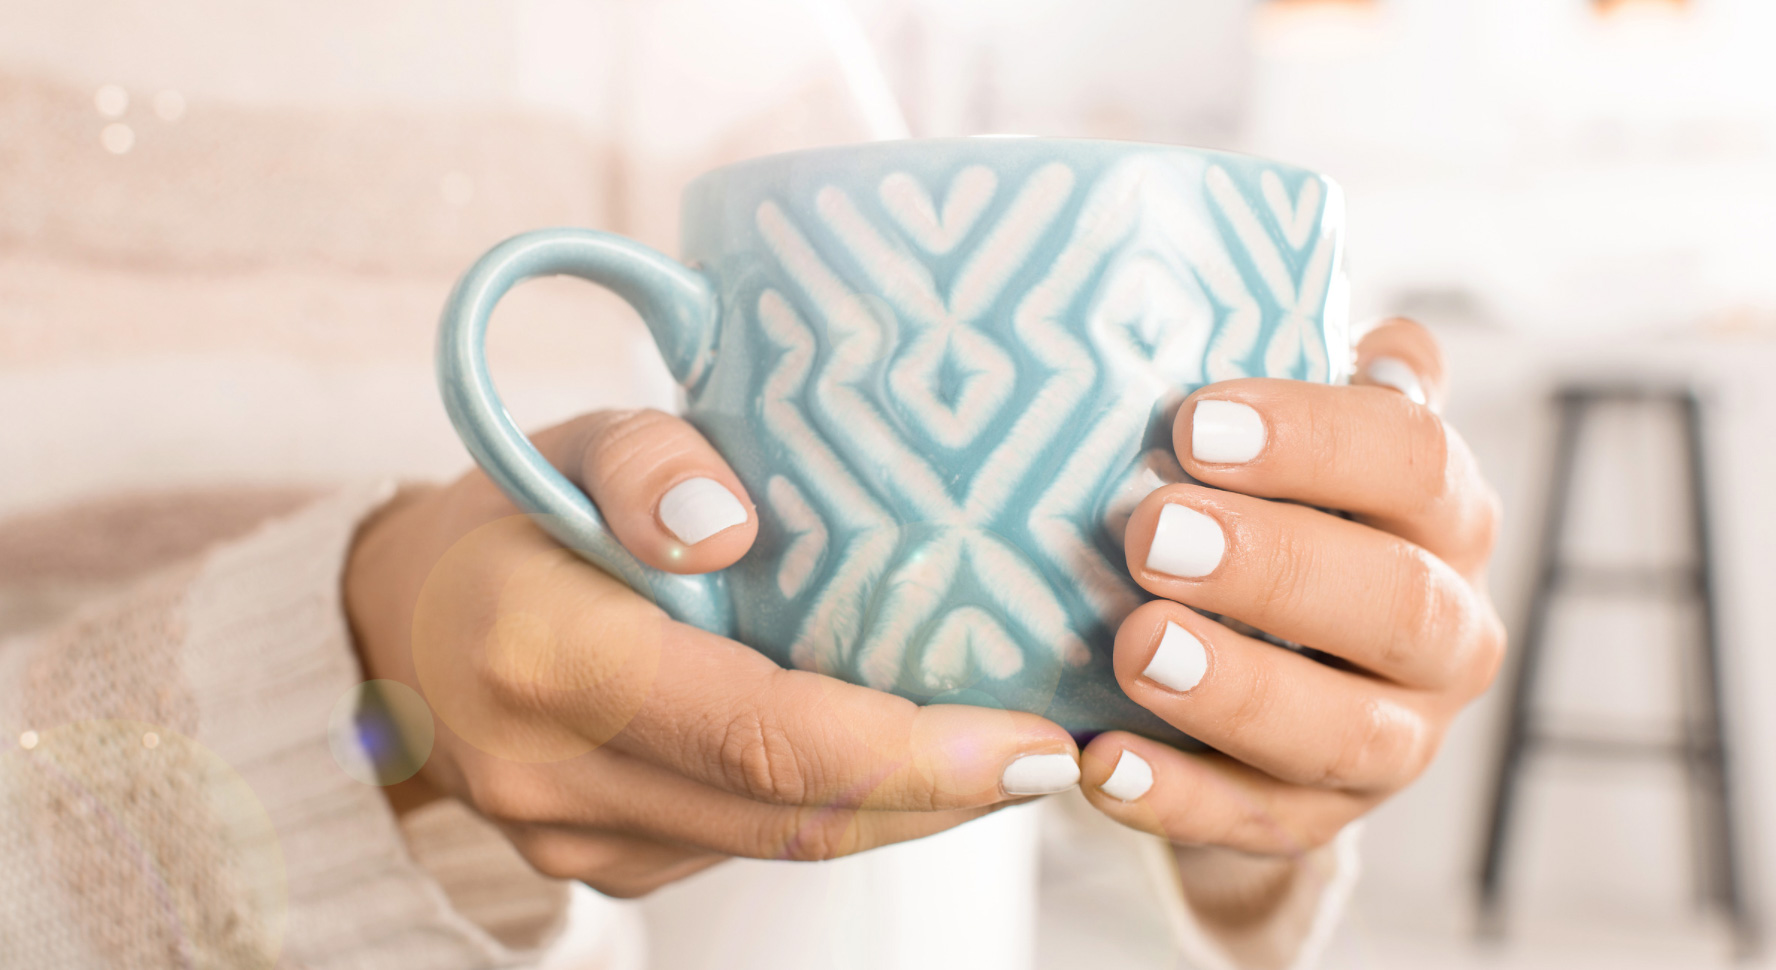 Holding a cup of tea. Image - Canva